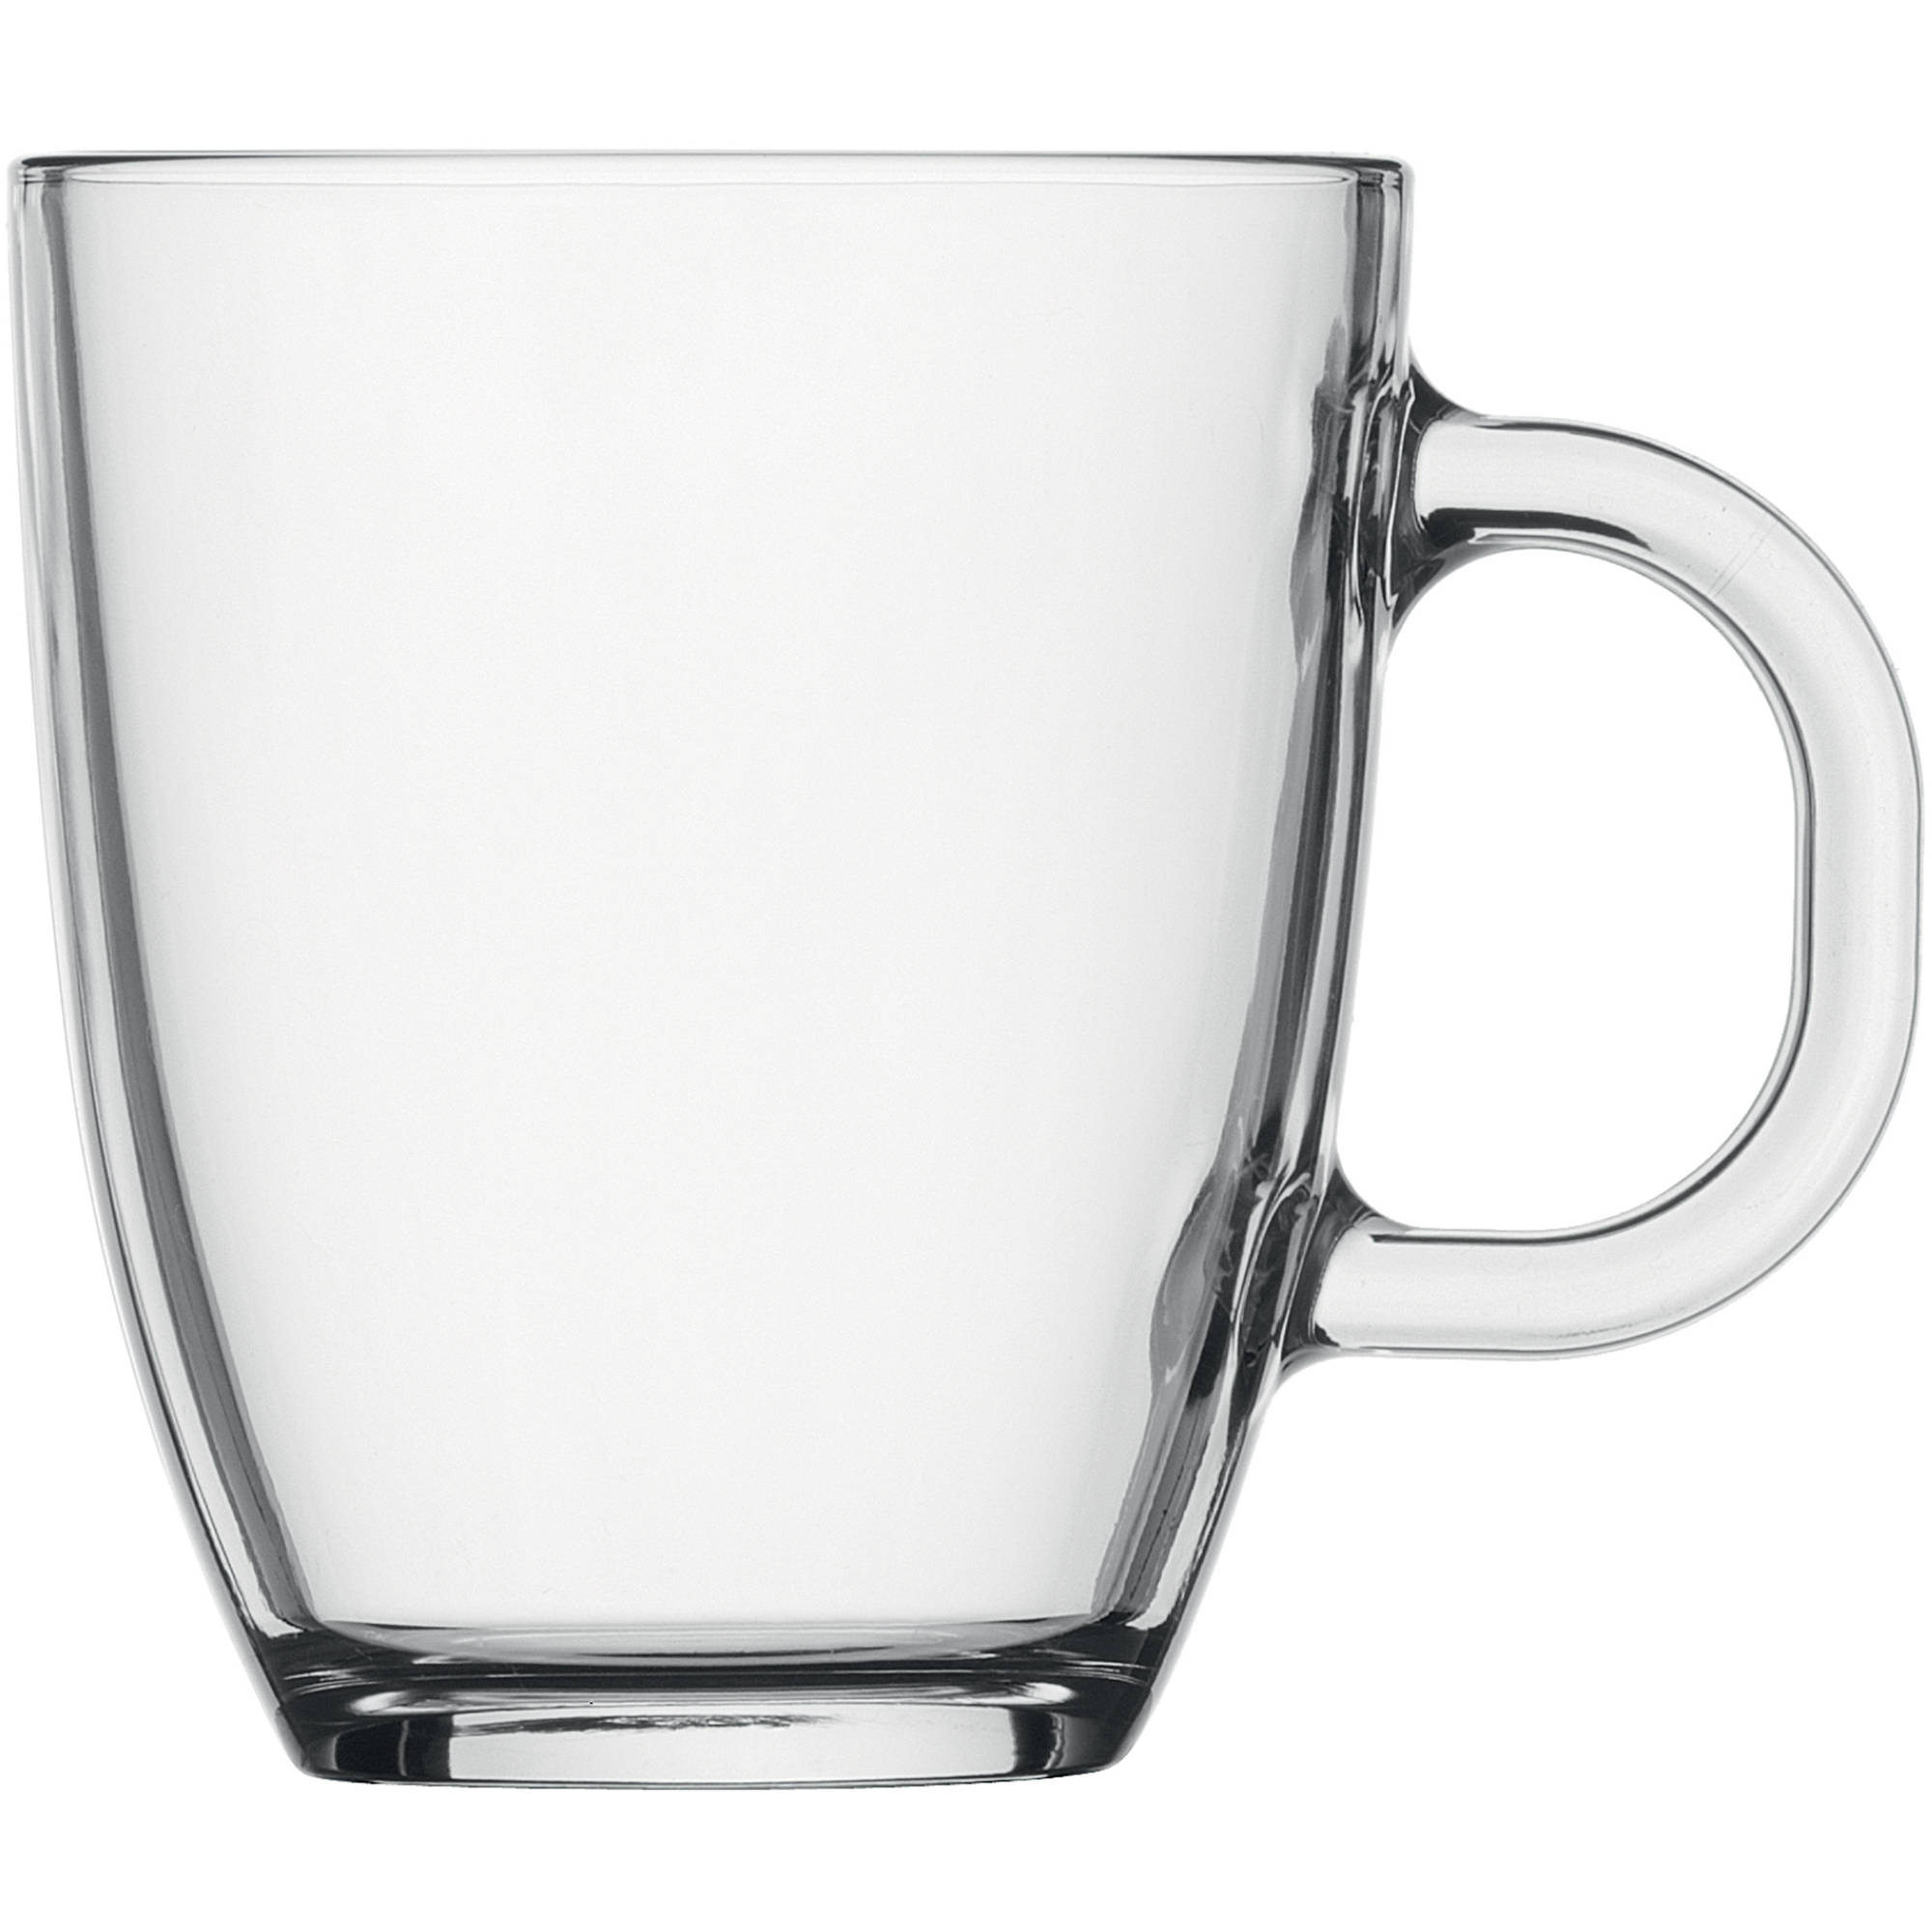 Bodum BISTRO Coffee Mug, Dishwasher Safe, .35 L, 12 Ounce, Transparent by Bodum